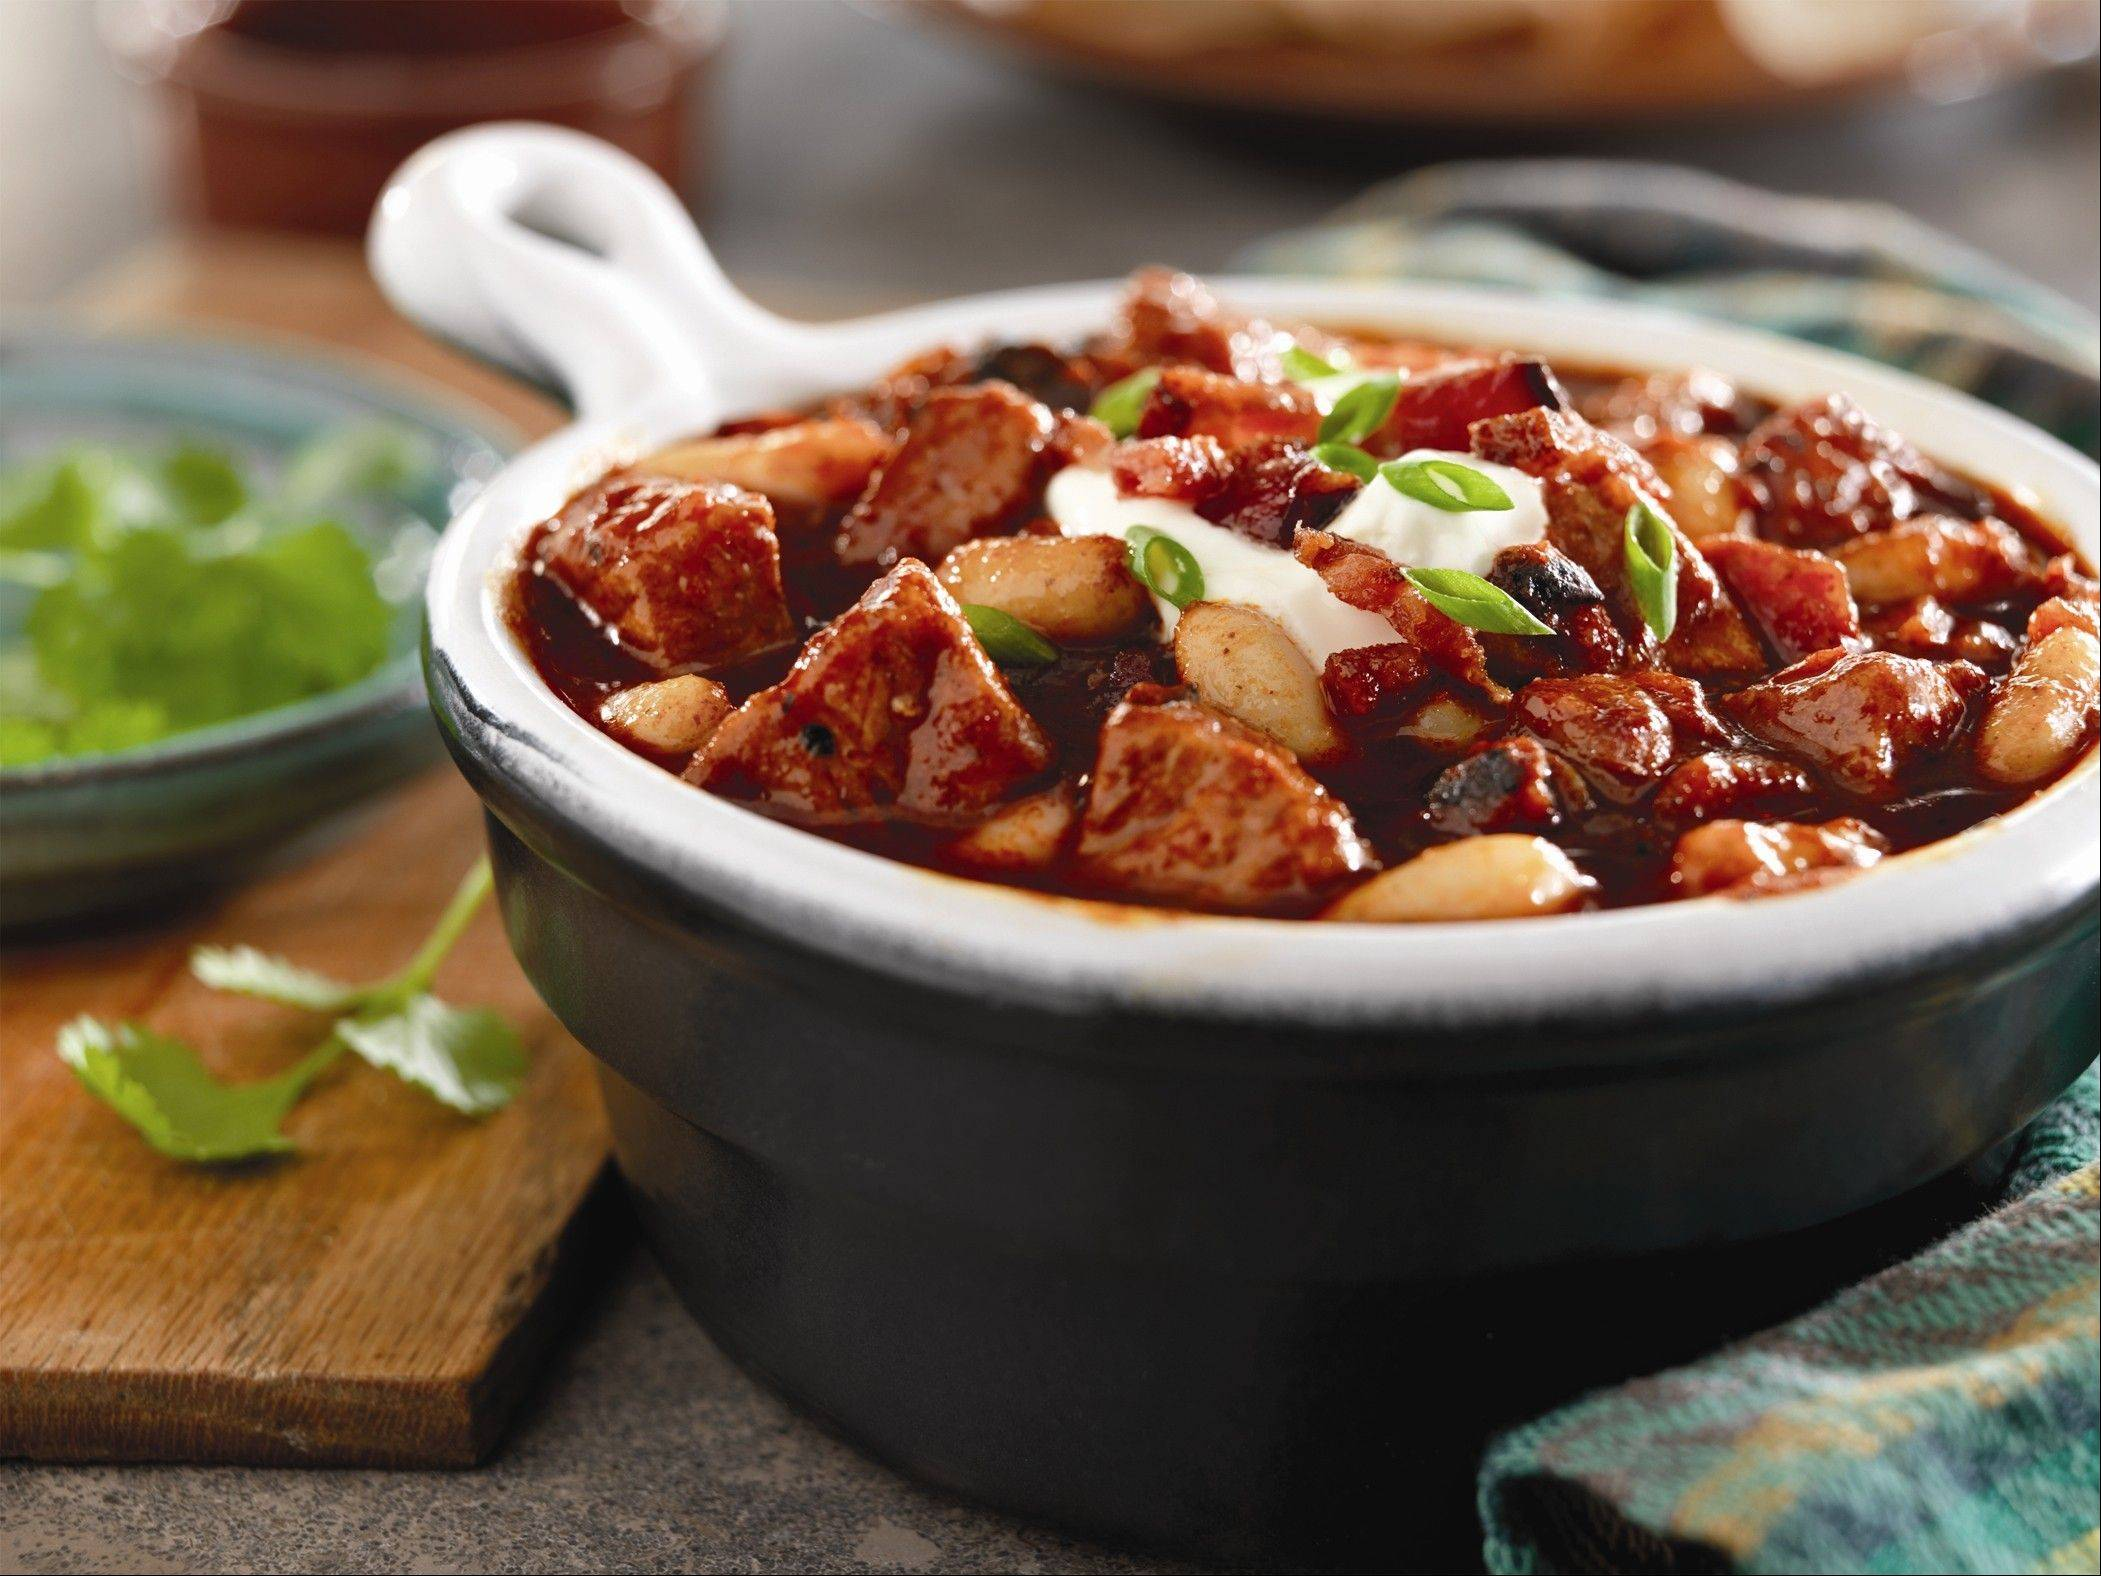 Smoky Pork, Bacon and White Bean Chili